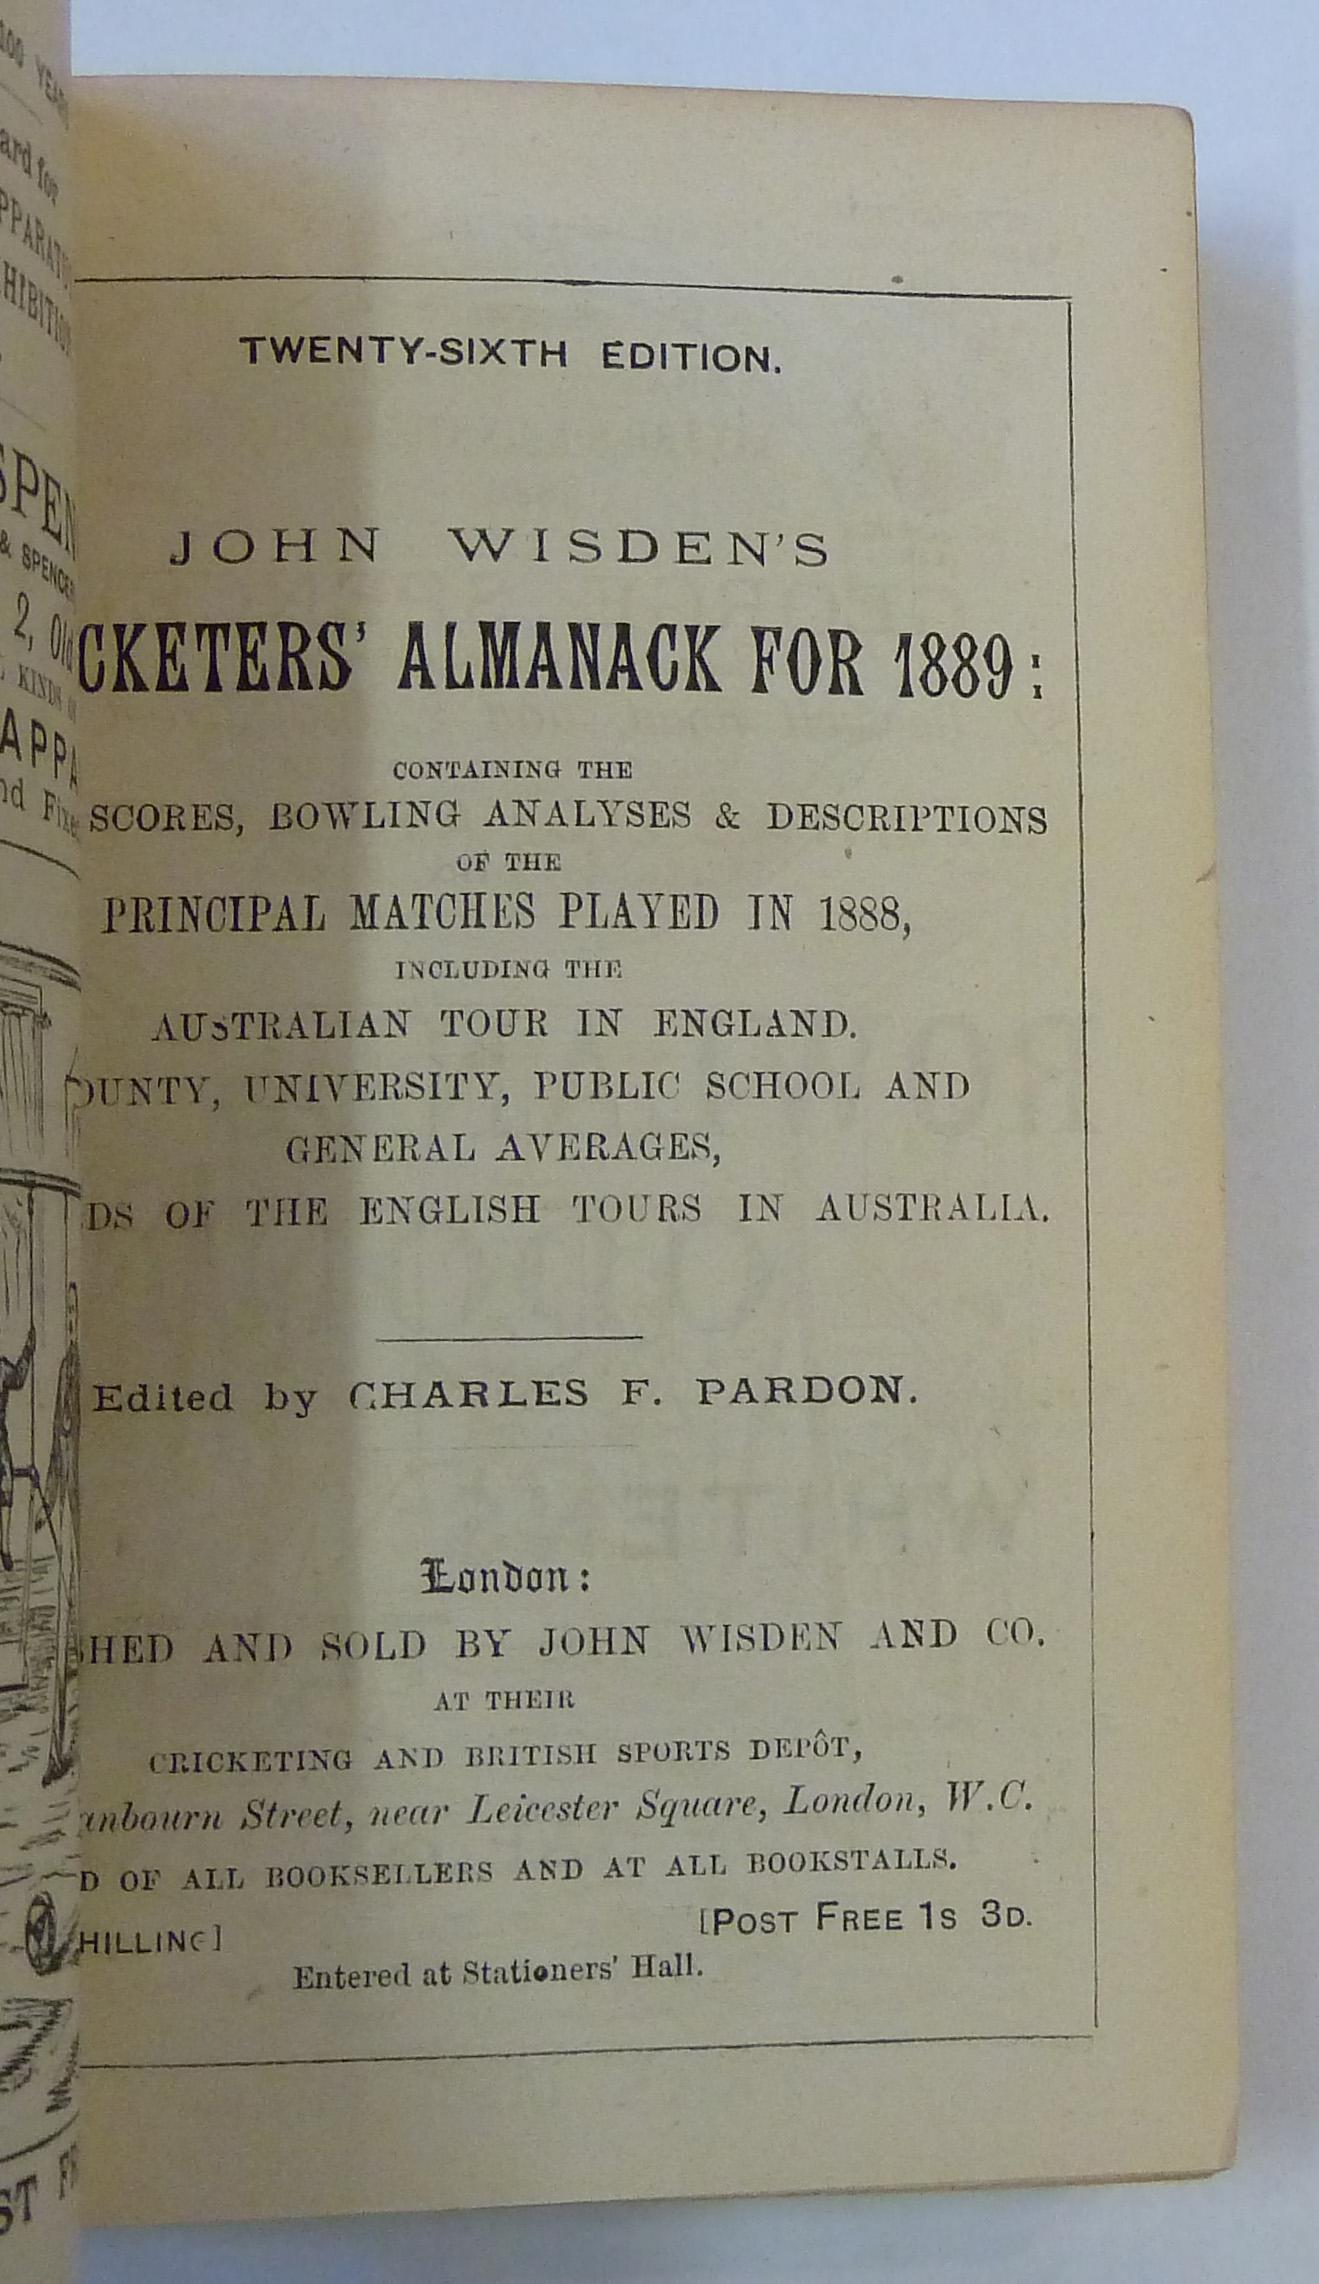 John Wisden's Cricketers' Almanack for 1889